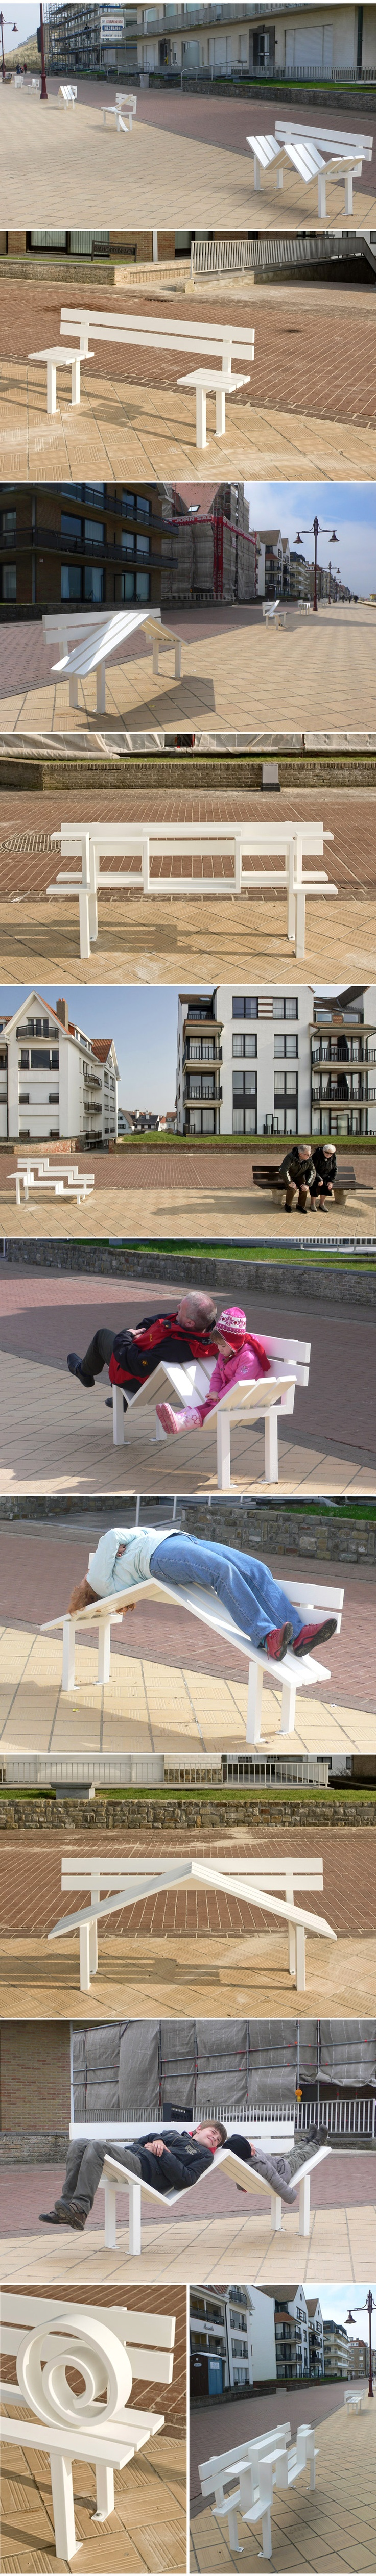 Jeppe Hein: Modified Social Benches—Danish artist Jeppe Hein has installed a series of modified benches which invite the seaside residents of the town of De Haan in Belgium to enter into an interaction which questions the nature of social behaviour in urban spaces. The bench designs borrow their basic form from normal park benches, but are altered in various degrees to make the act of sitting on them a conscious physical endeavour.